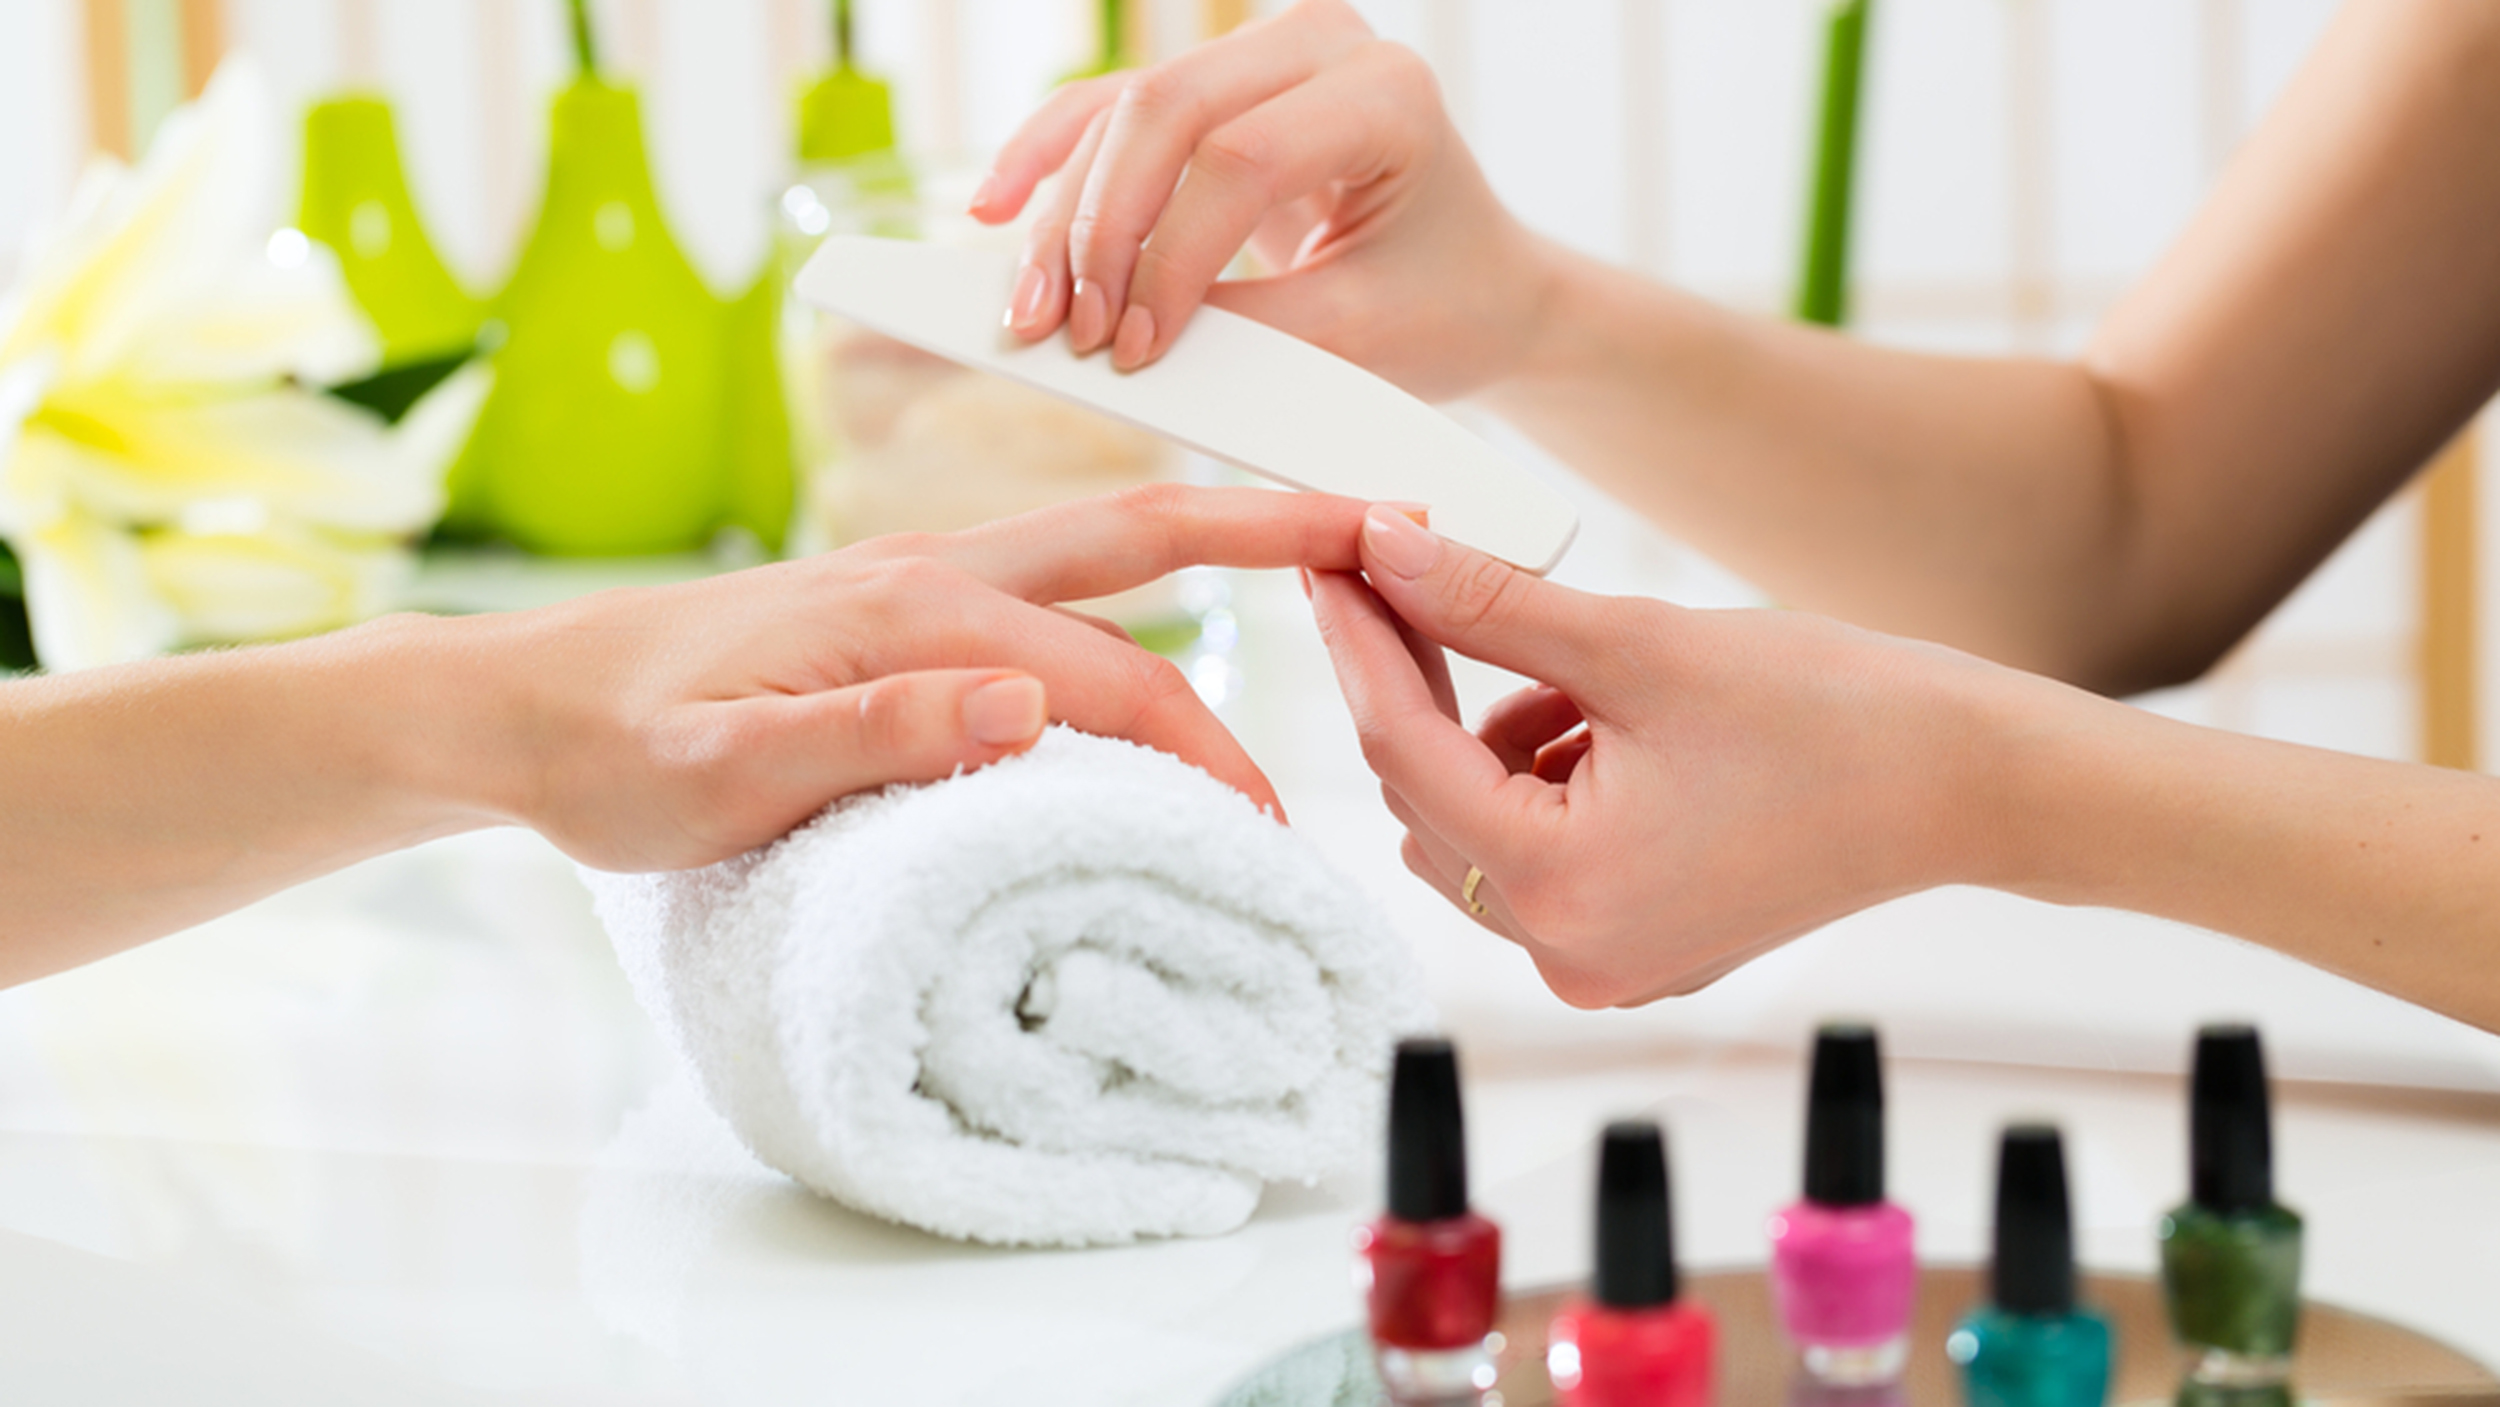 Pedicure Salon Nail Salon Etiquette How Much Should You Tip